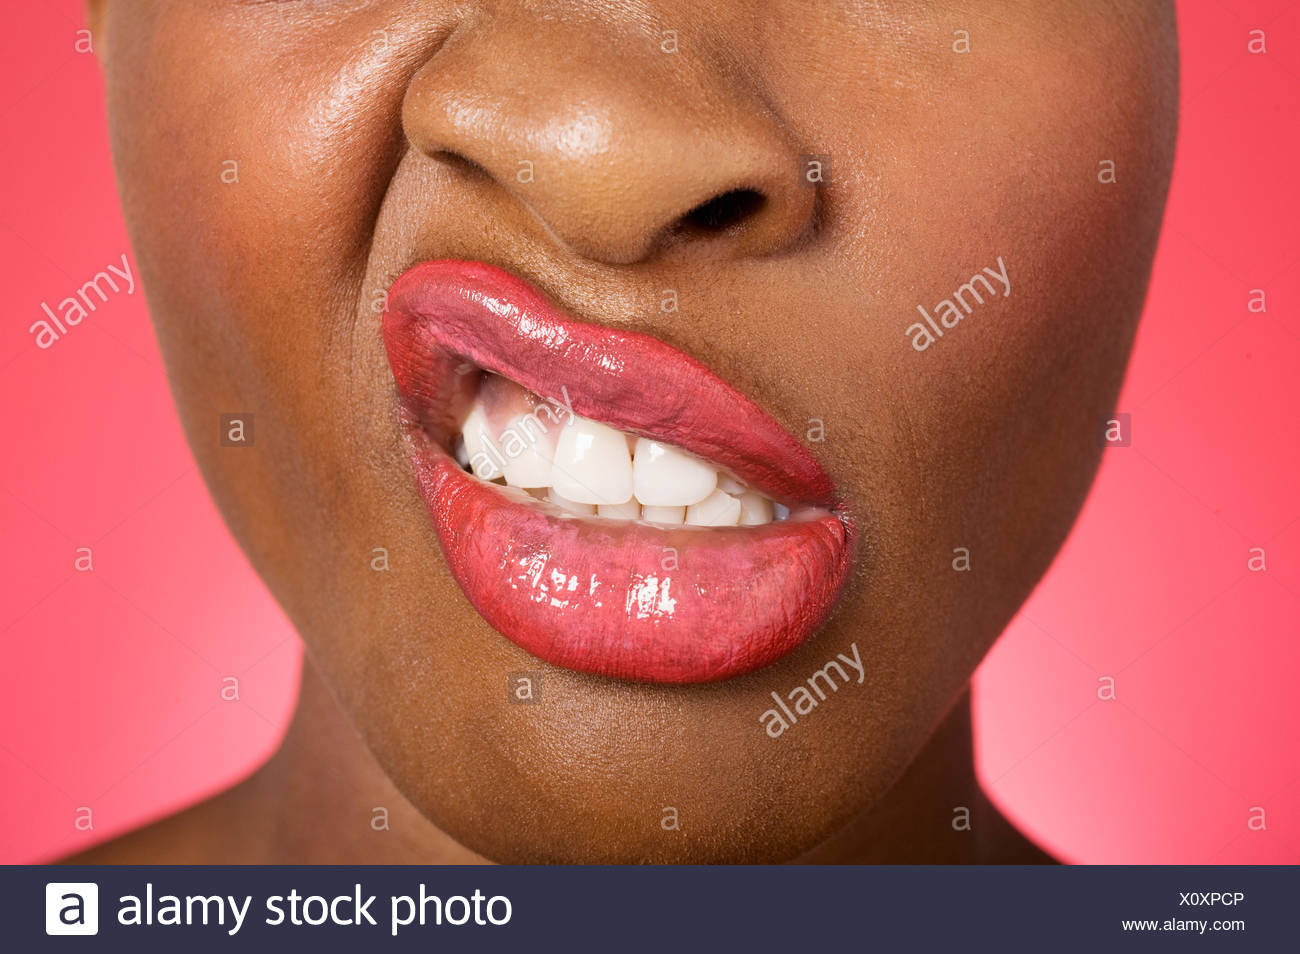 Close up of woman making a face - Stock Image